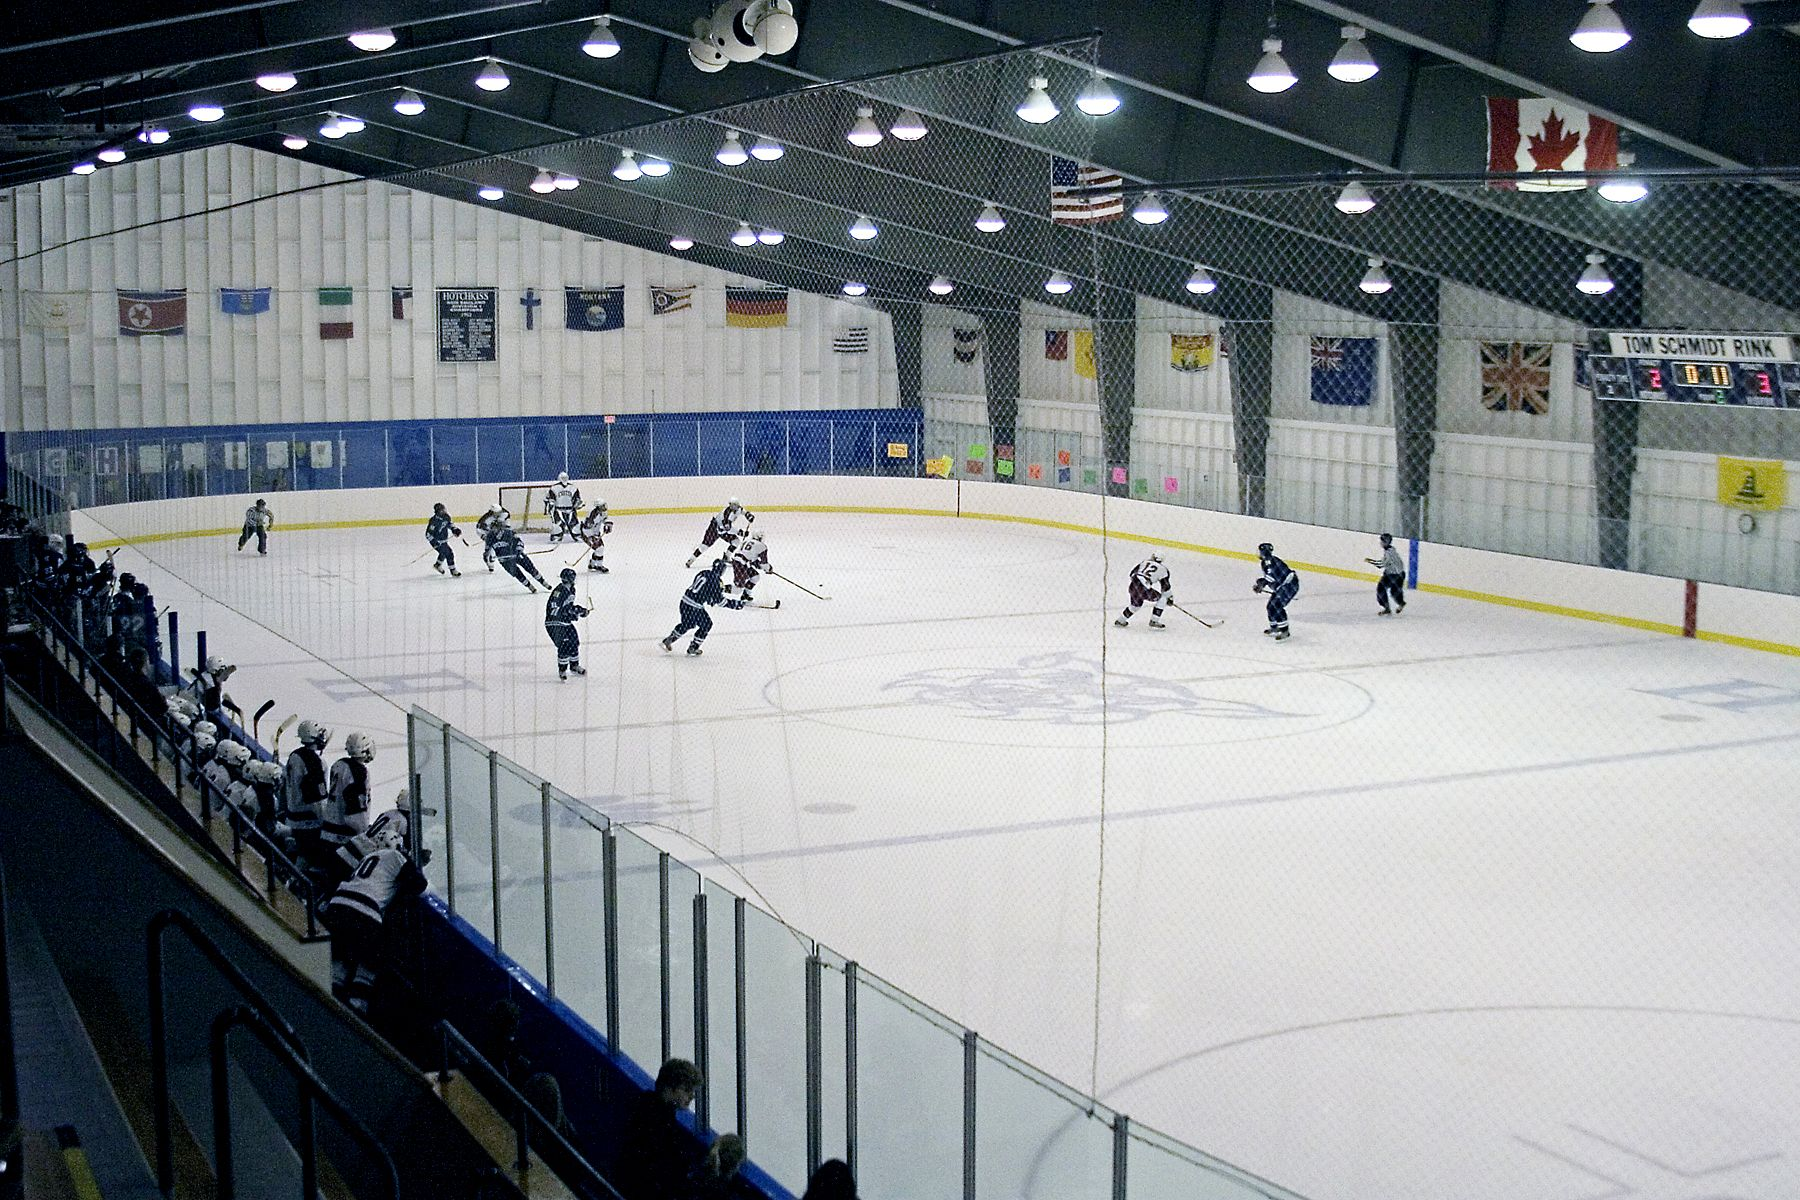 Thomas Schmidt Rink at The Hotchkiss School